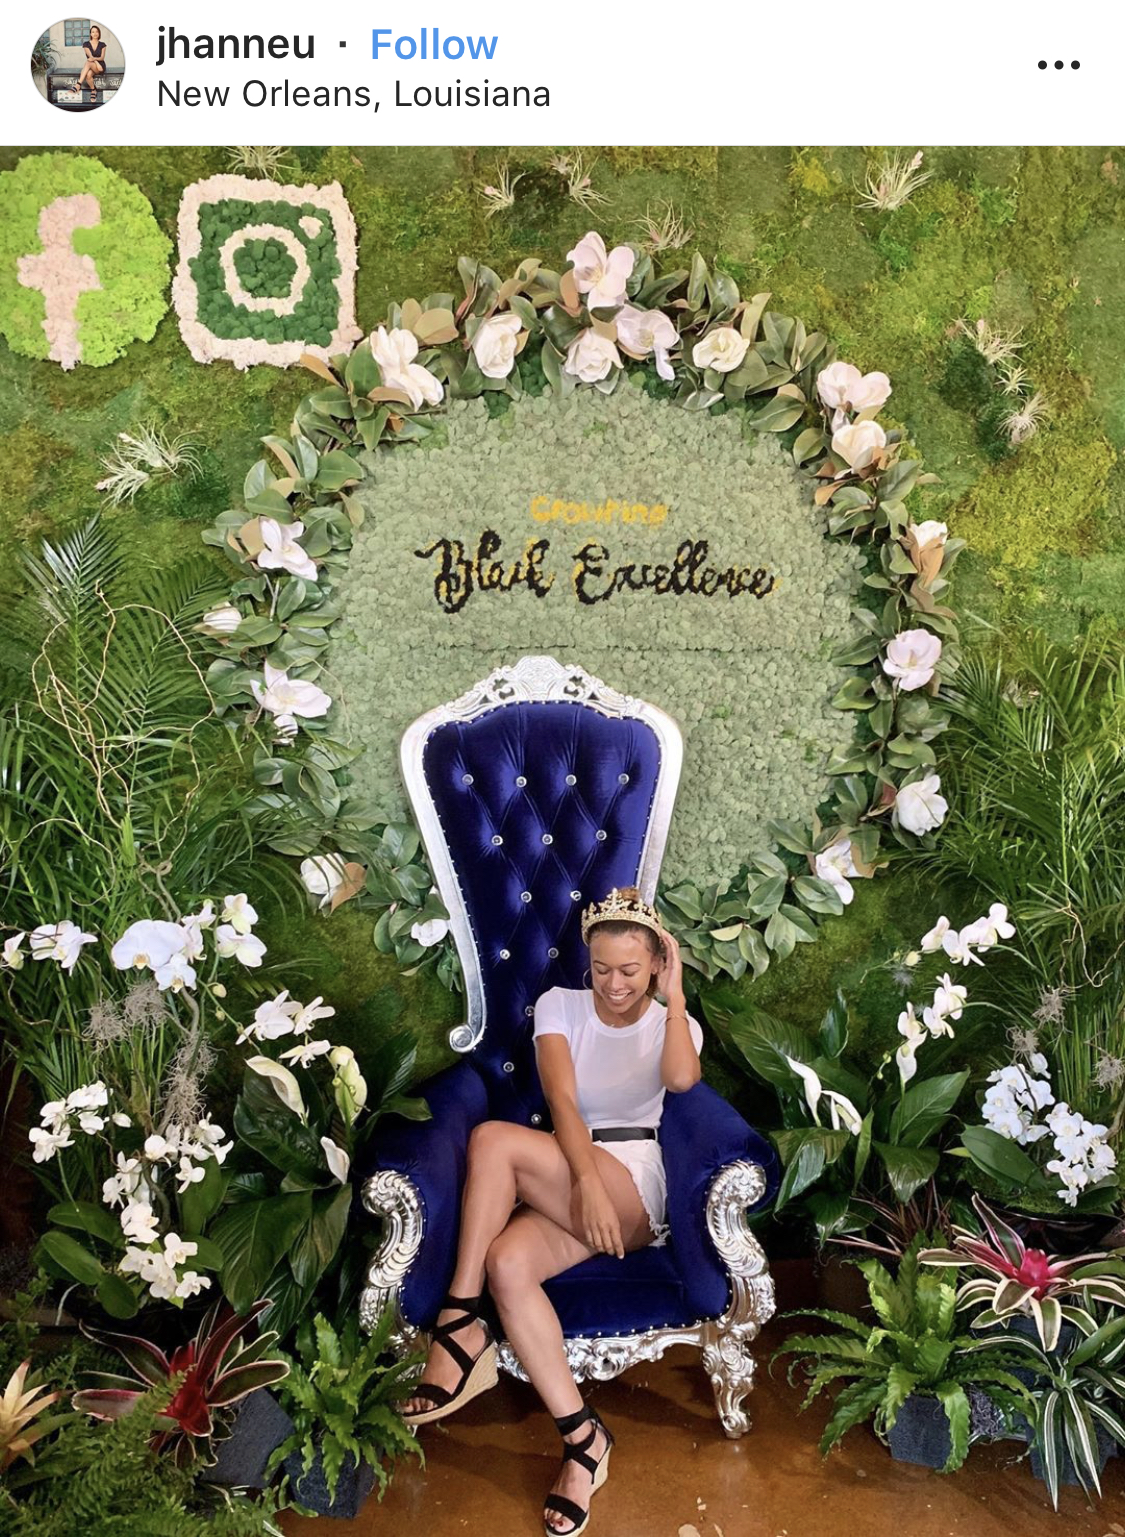 Another beautiful branded photo booth. All you need is a stunning chair, a great prop (in this case the crown). My only critique here is that the font in yellow is a little difficult to read. Other than that, this is great!